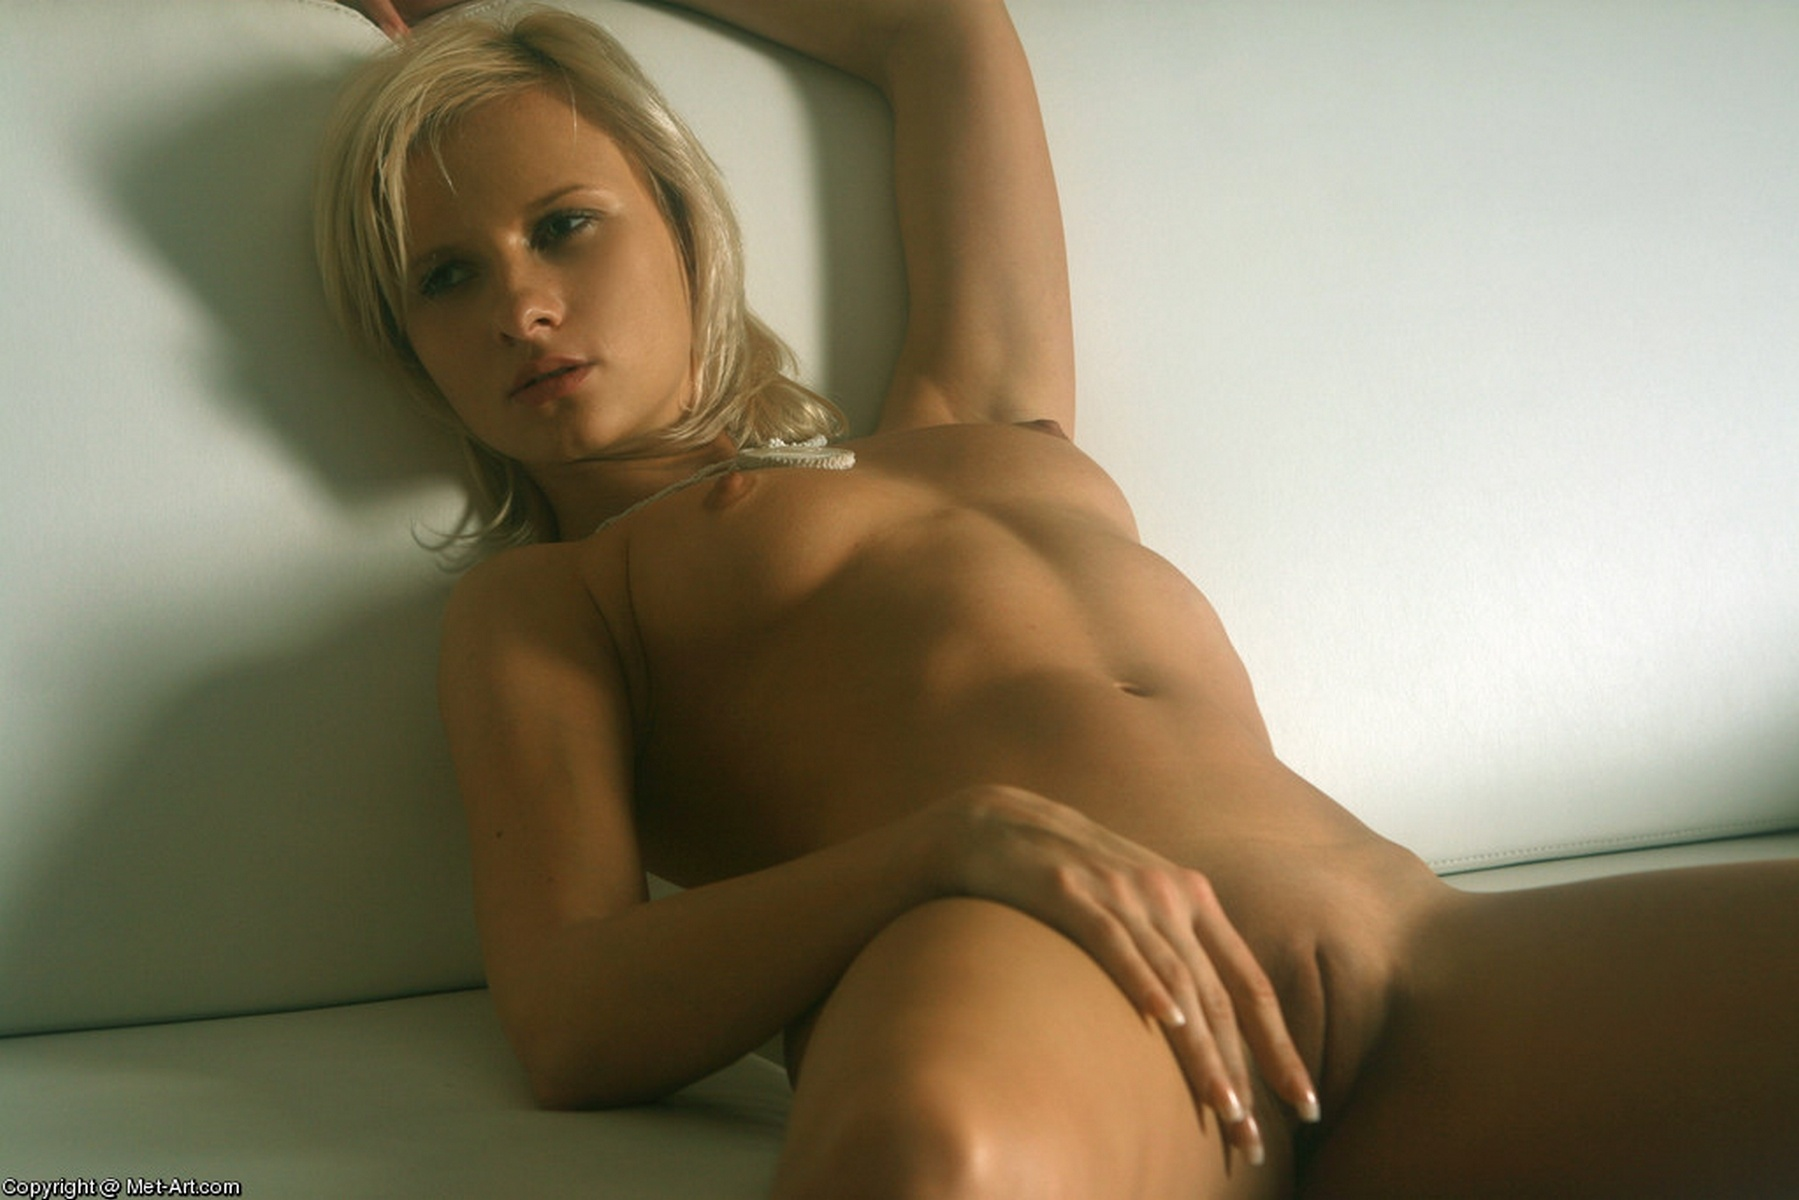 Chicks nude sweet hot your